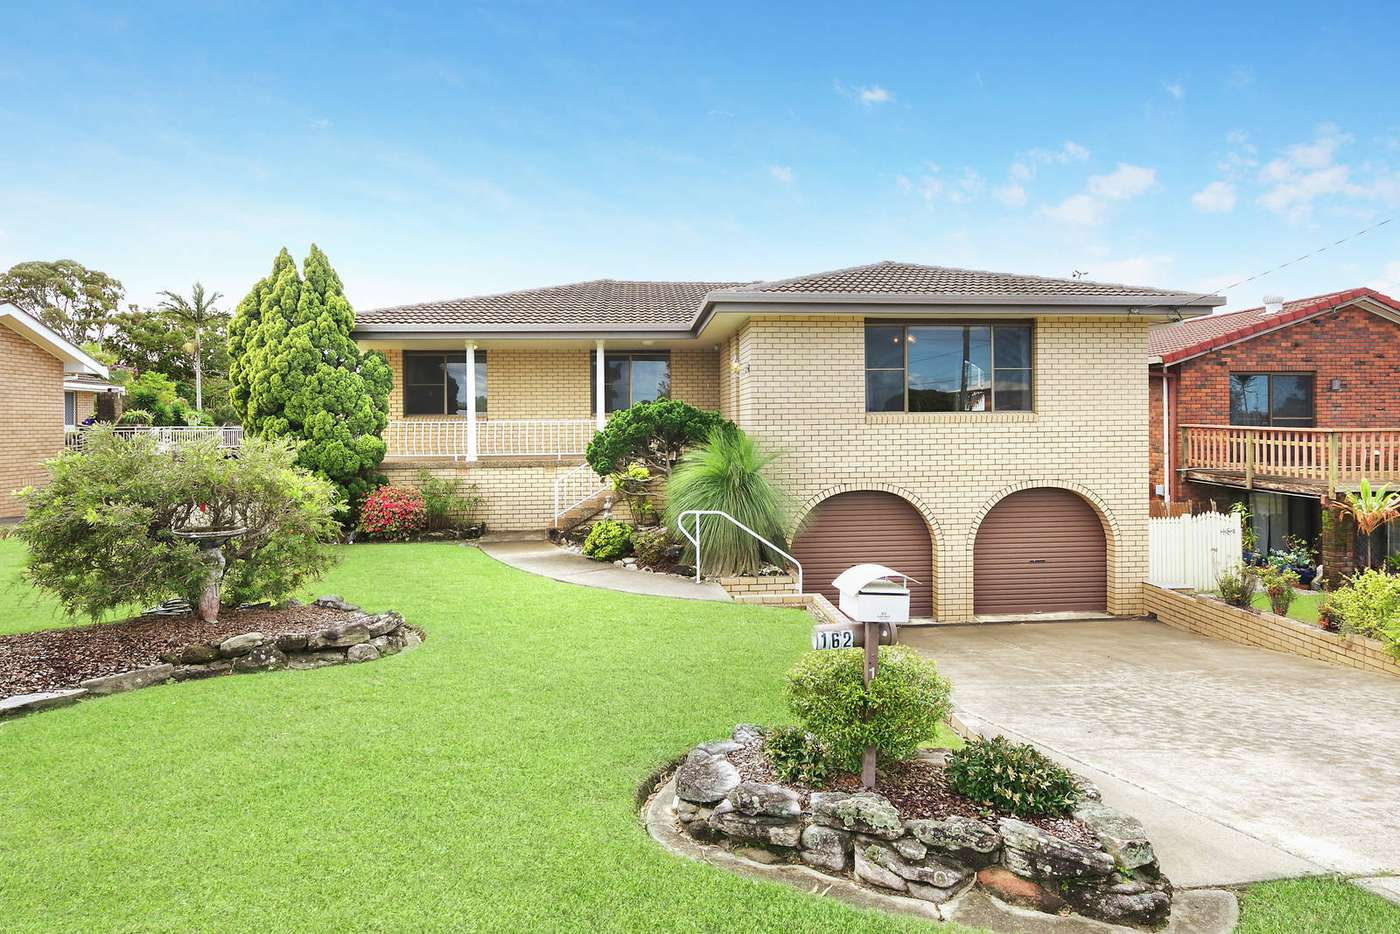 Main view of Homely house listing, 162 Lyons Road, Sawtell NSW 2452